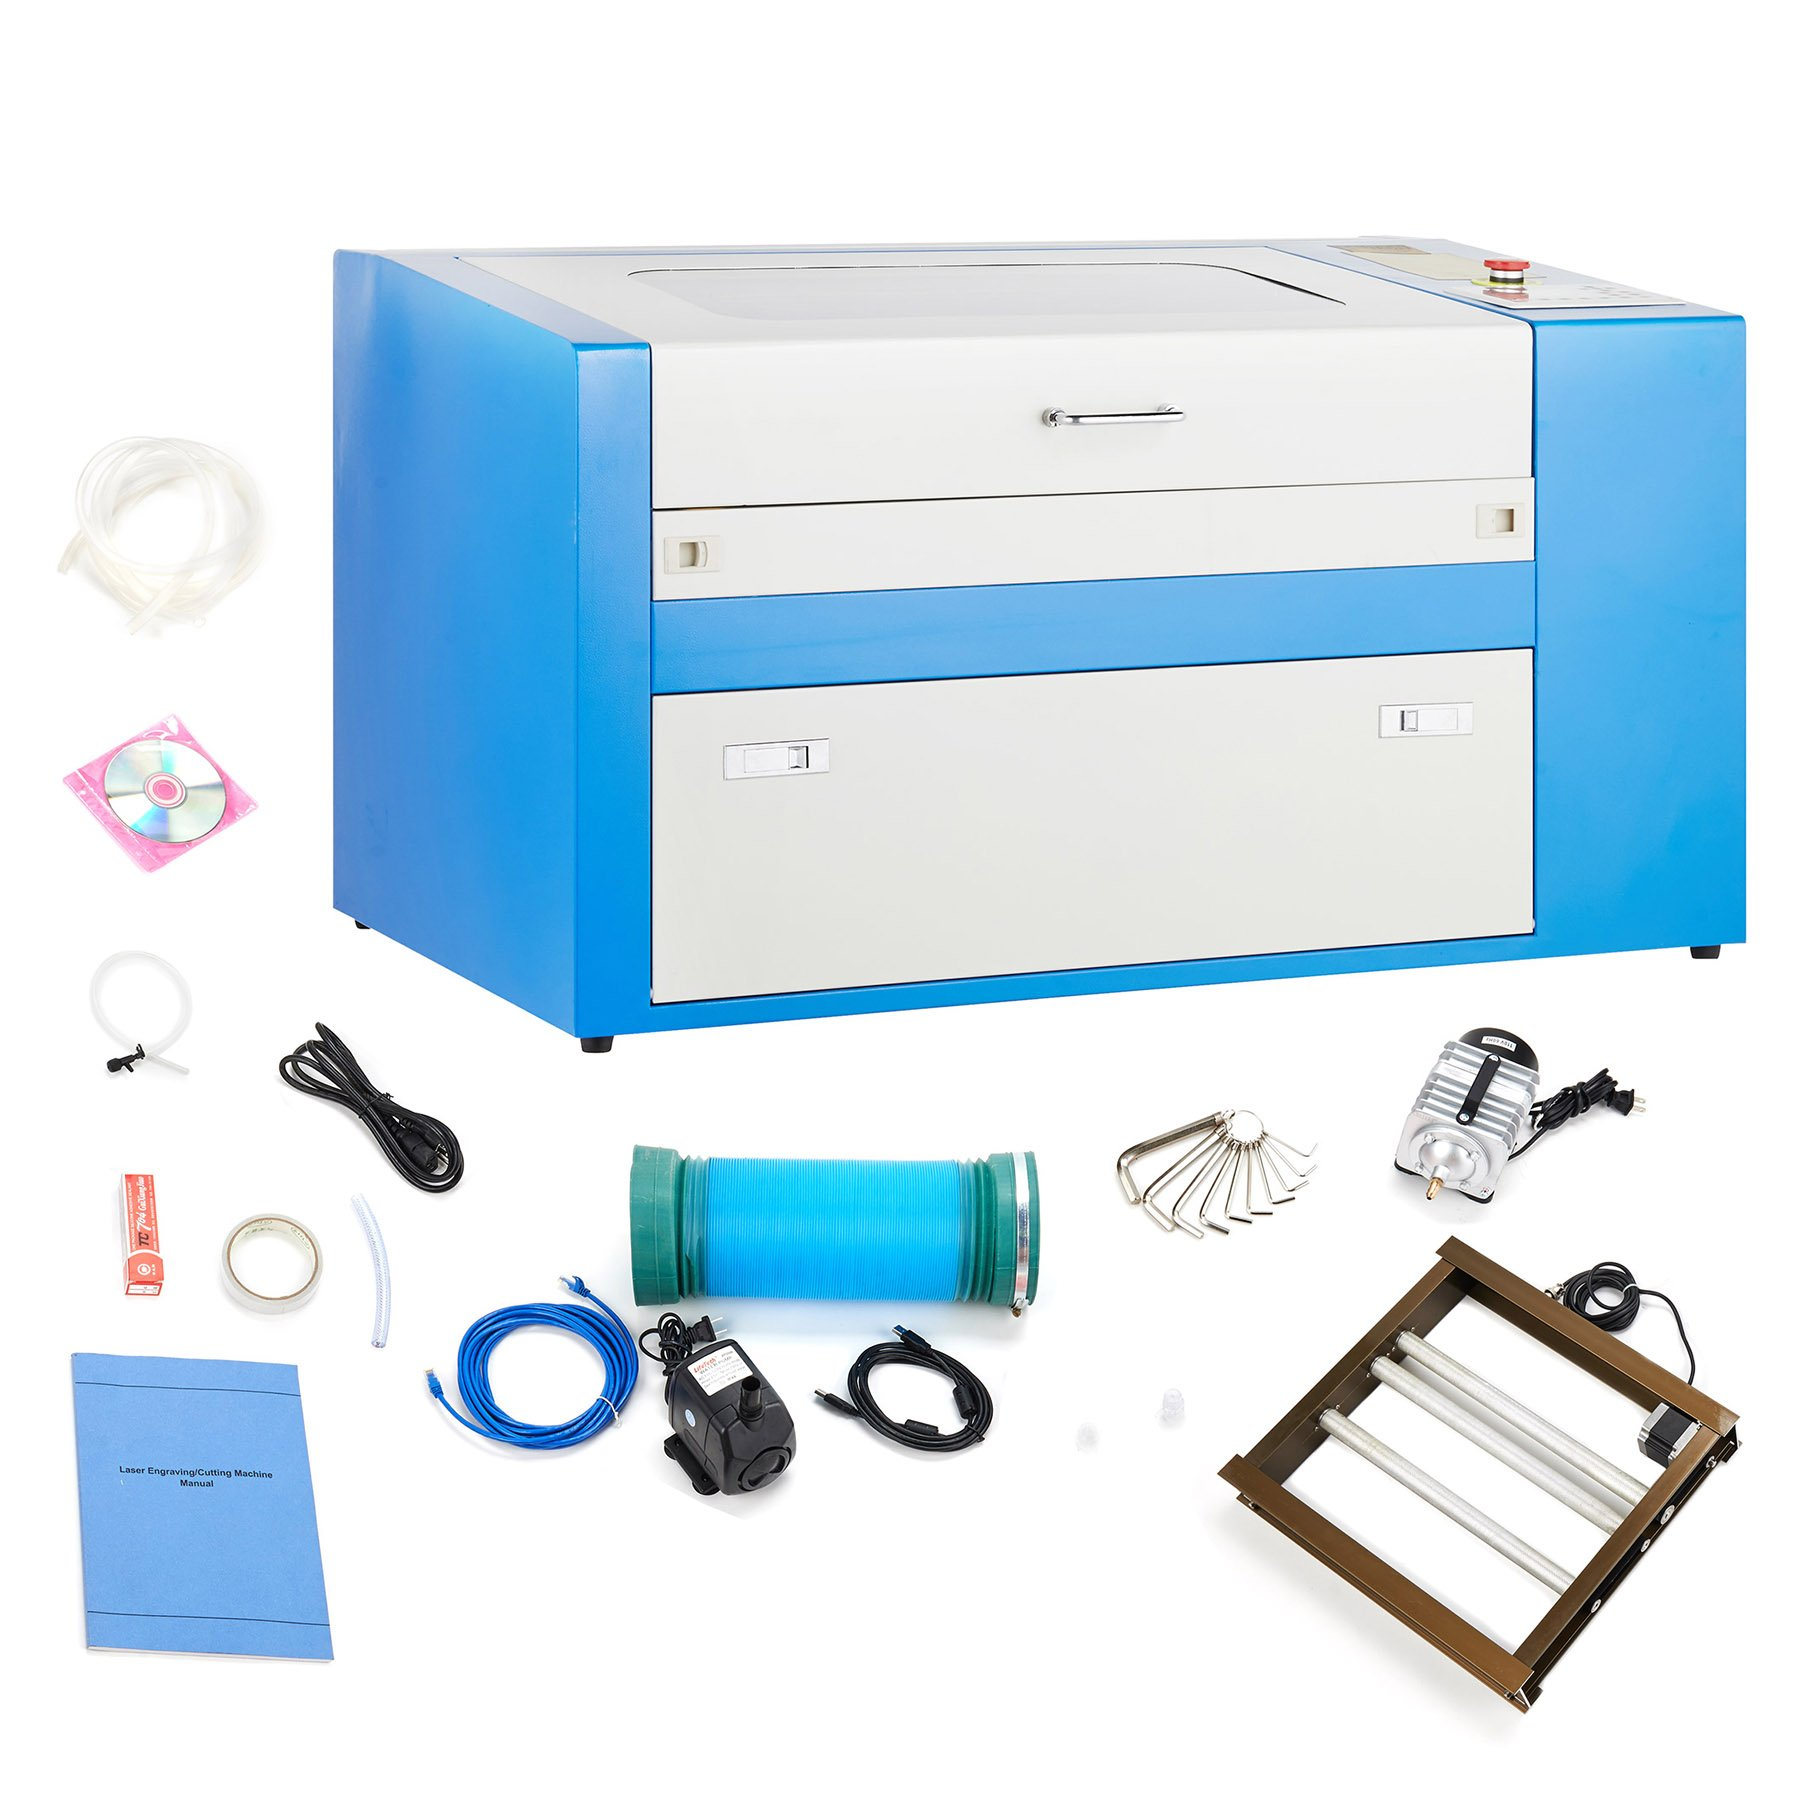 Orion Motor Tech 50W 110V CO2 Laser Engraving Machine Engraver Cutter Auxiliary Rotary Device